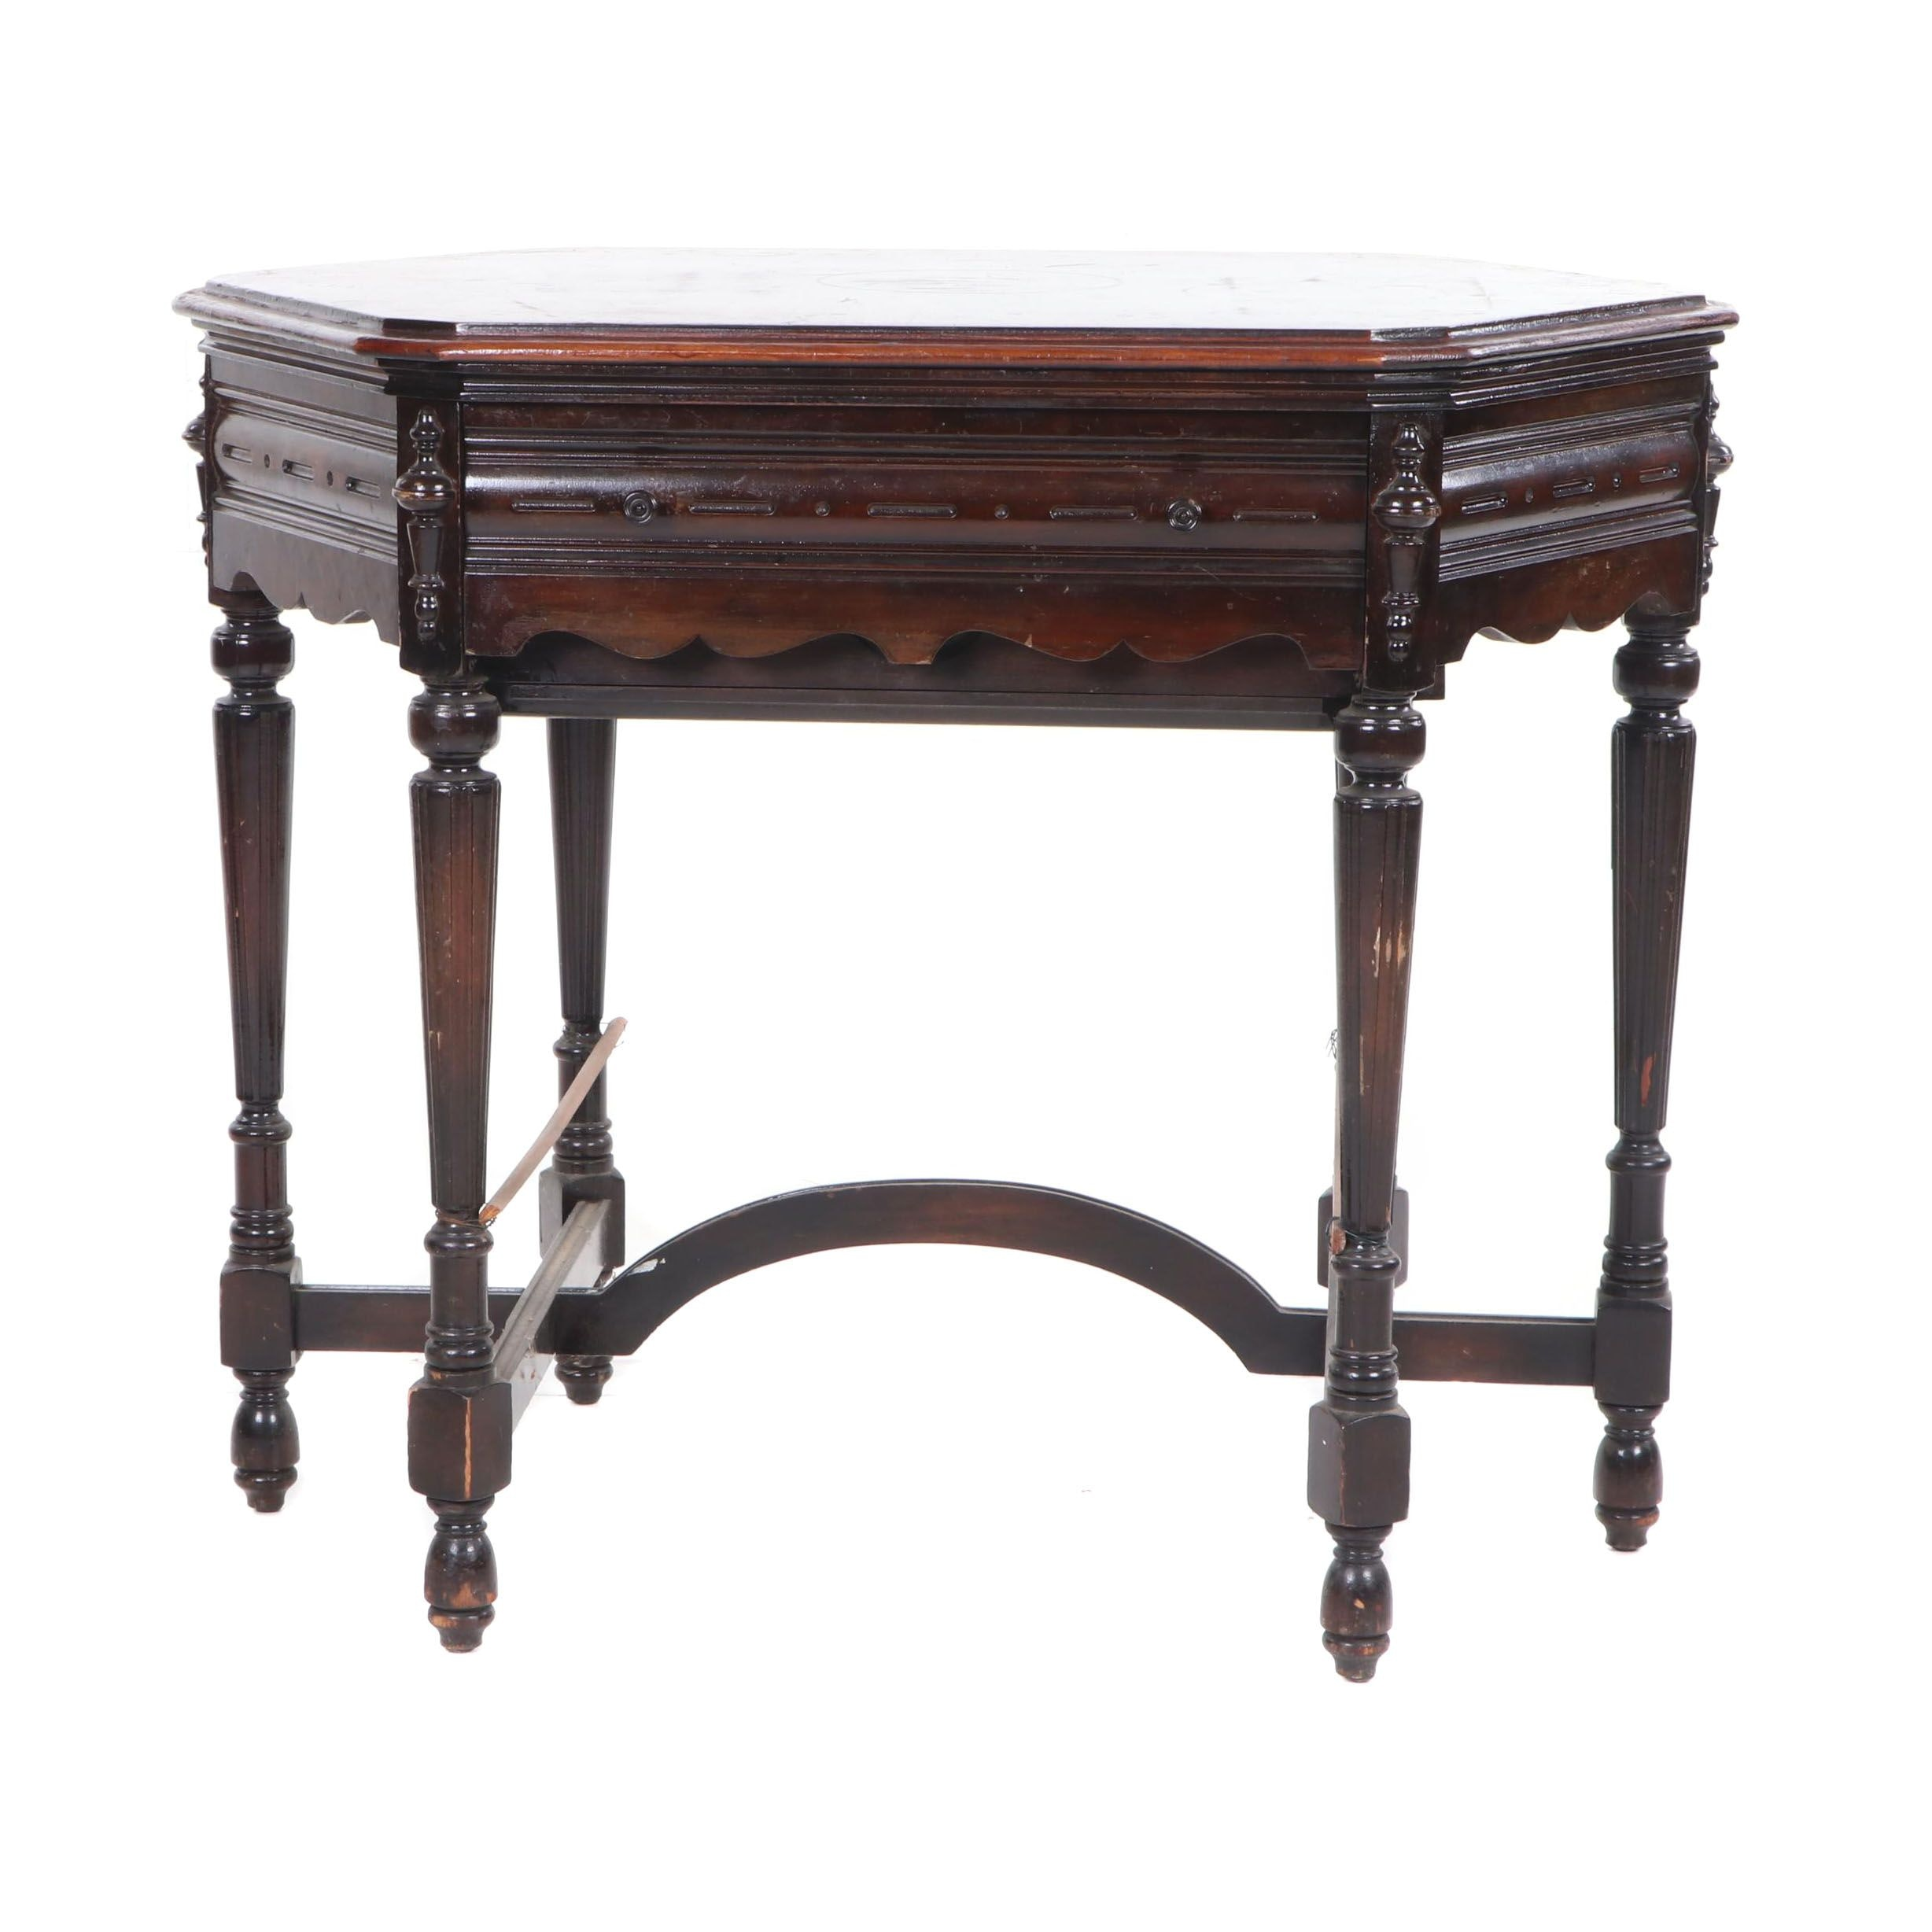 Victorian Figured Mahogany Sewing Table, Late 19th Century